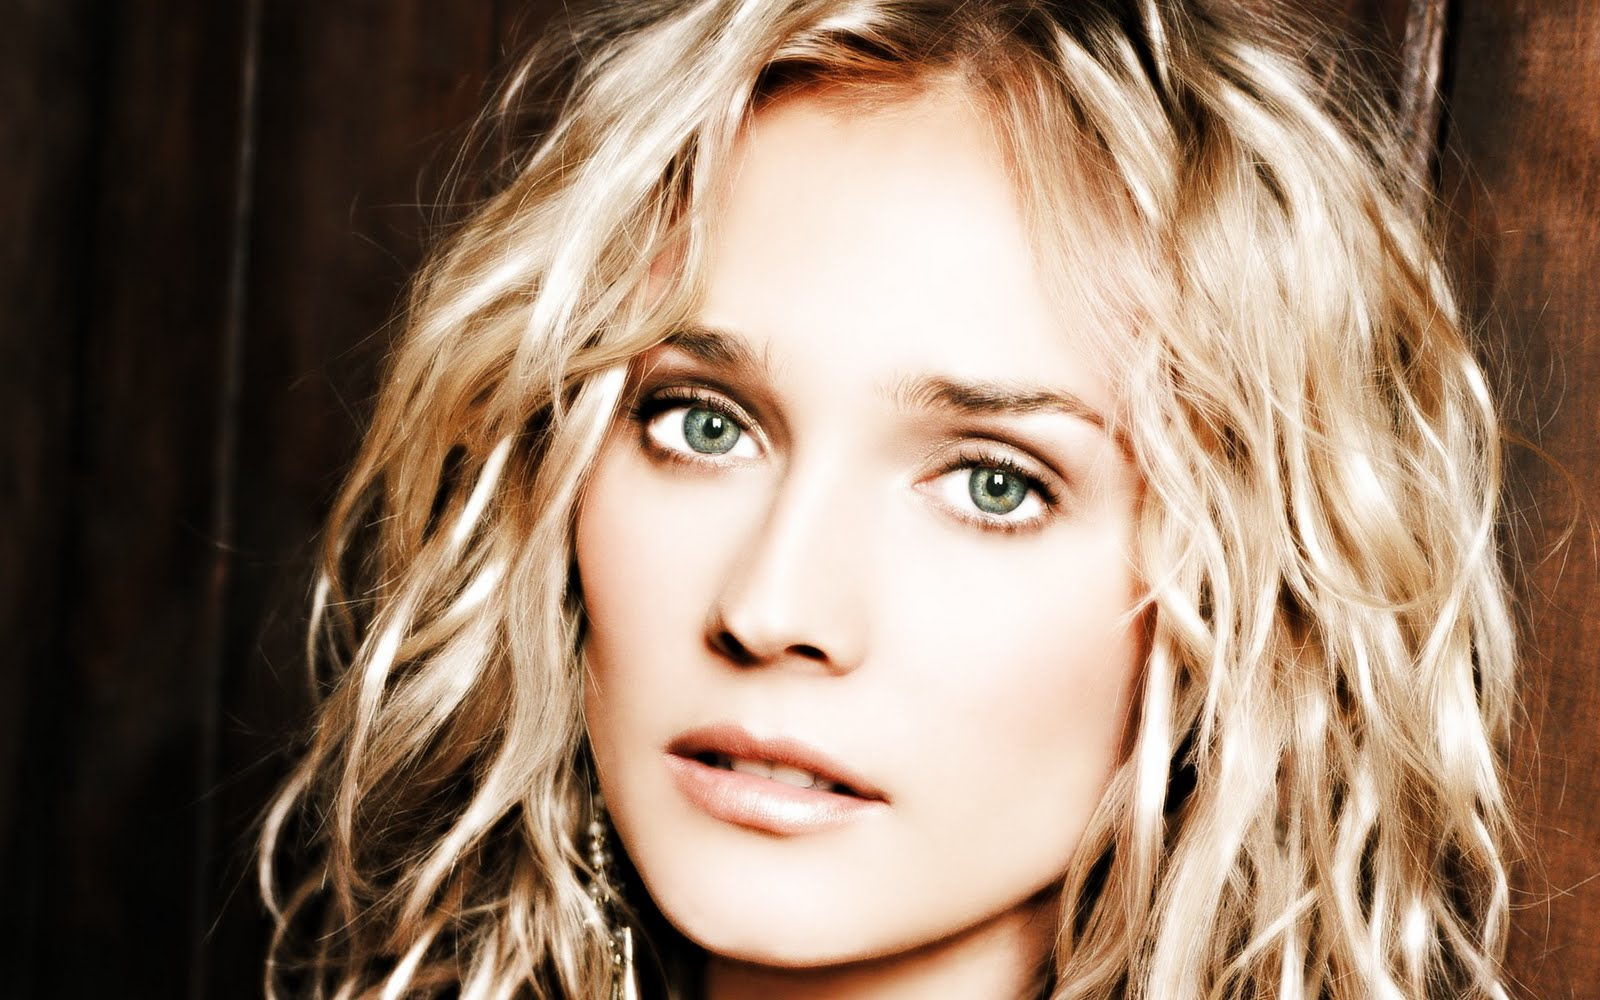 http://4.bp.blogspot.com/-hAyT0mk_27Y/TktQdVudfkI/AAAAAAAAAnw/k5w2TDoaYAE/s1600/vvallpaper.net_diane_kruger_blonde_green_eye_close_up_macro_perfect_face.jpg